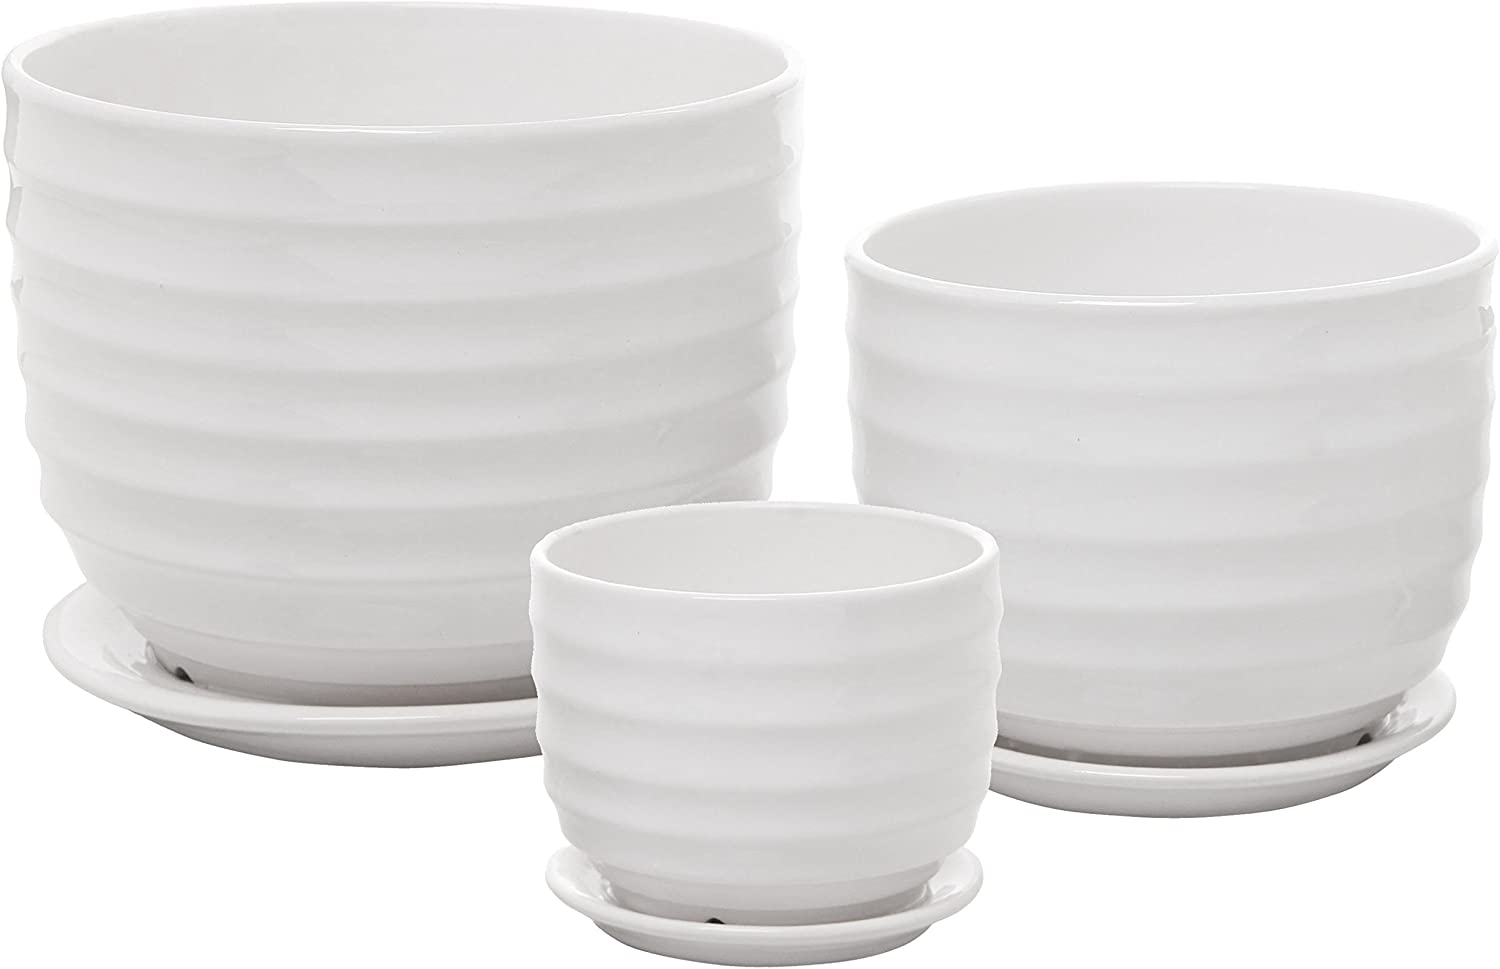 Set of 3 Small to Medium Sized Round Modern Ceramic Garden Flower Pots, White